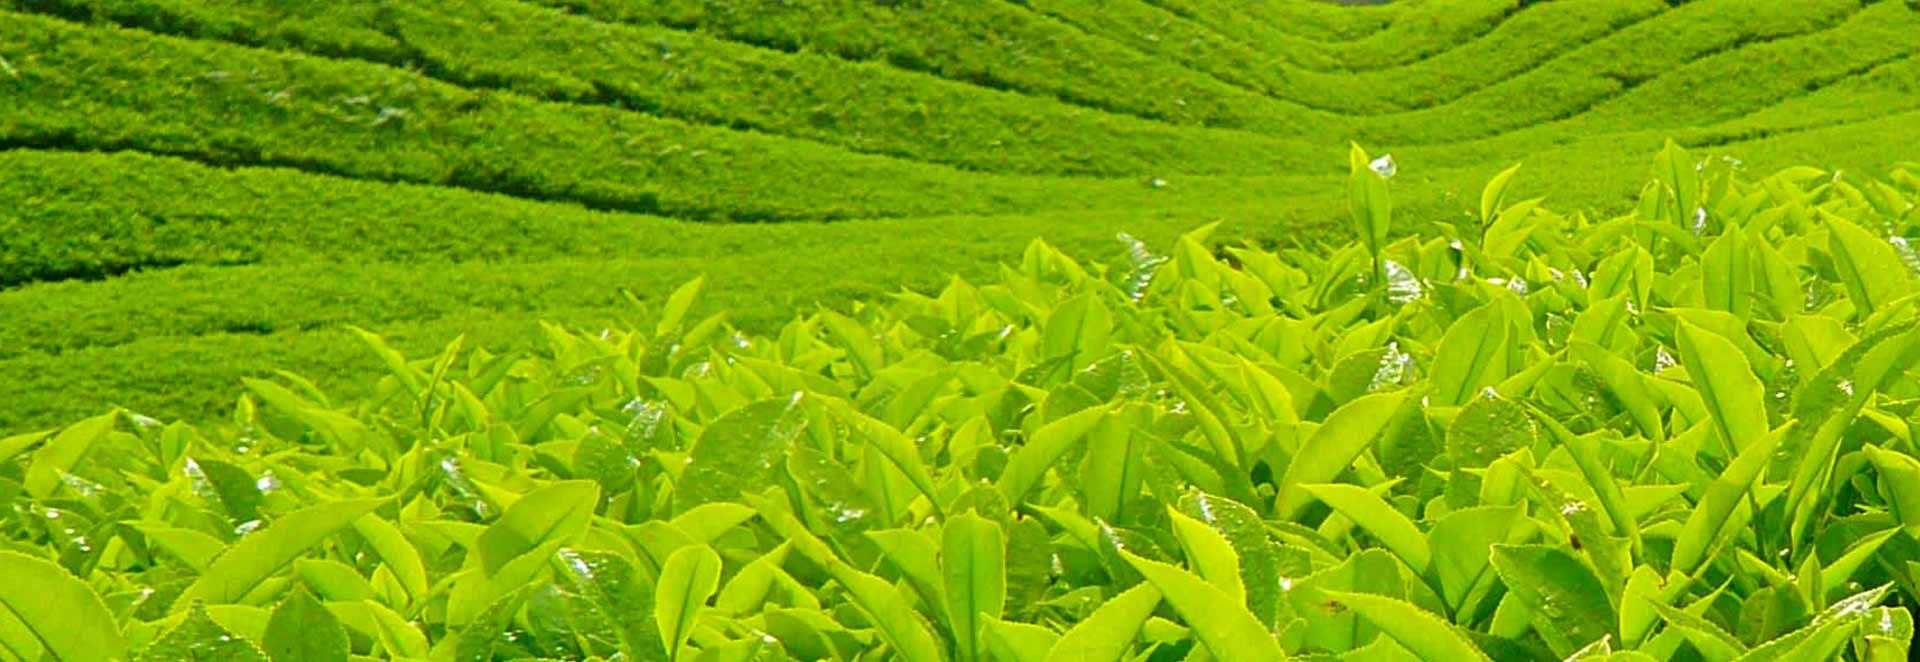 Dhanuka Sarthi Crop Detail banner section 1 image